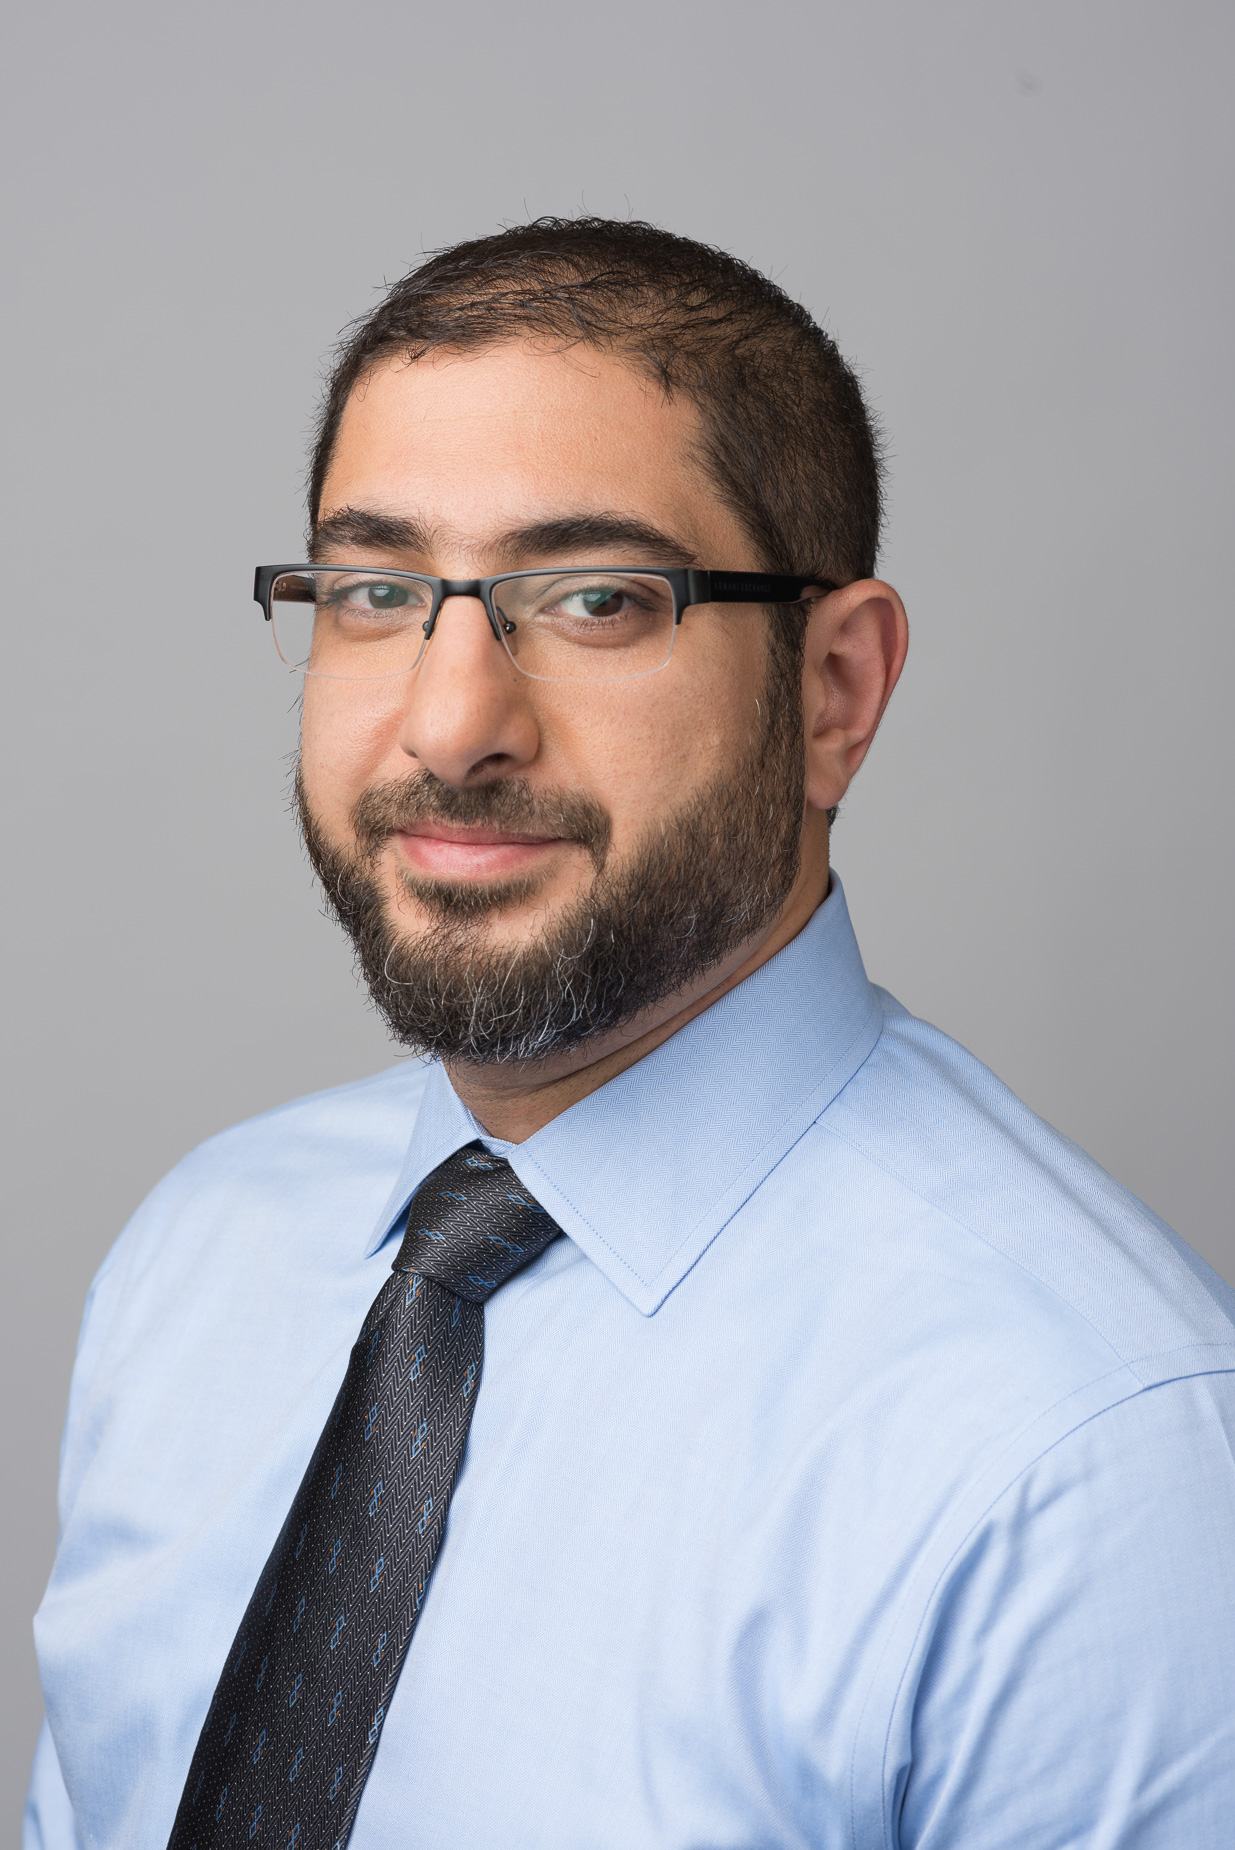 Husam Abu-Zaydeh headshot for Bank of America, Pennington, New Jersey